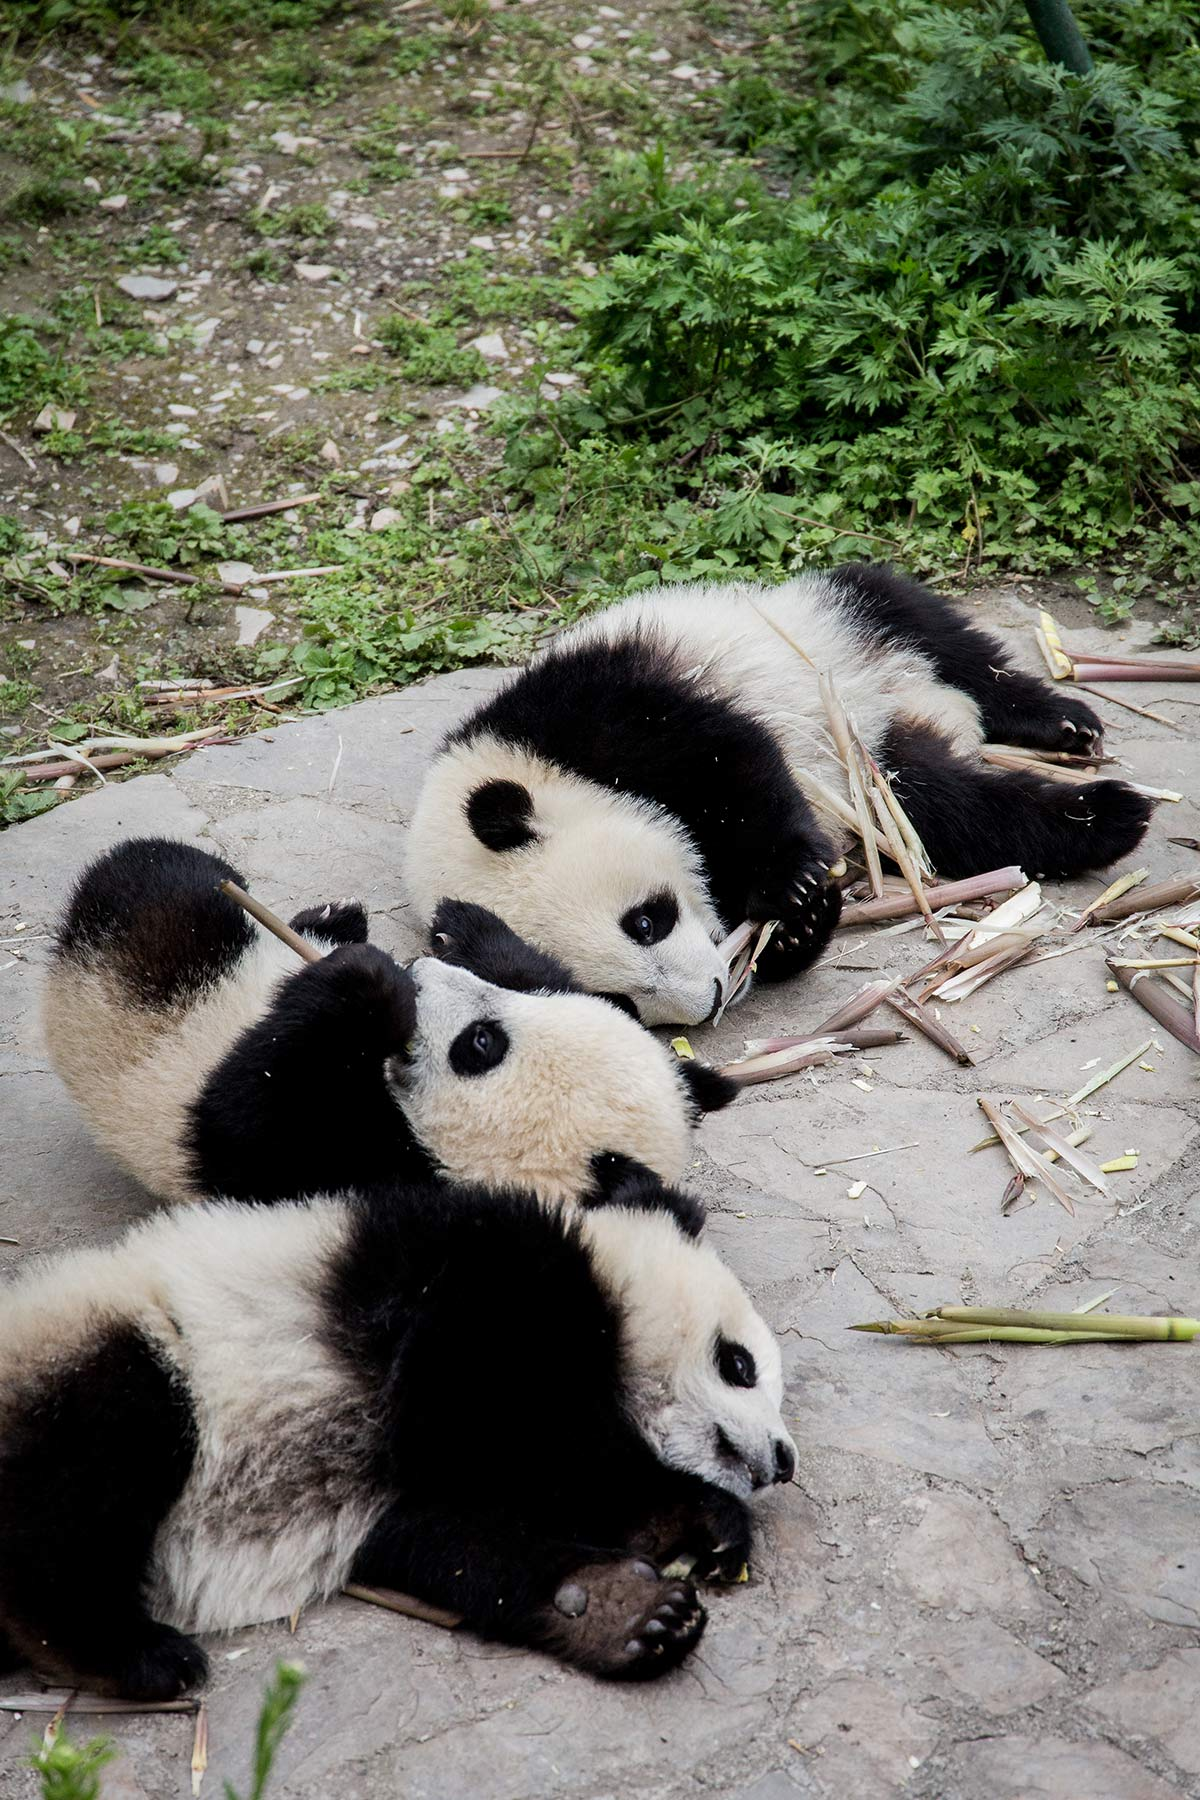 pandababies in der pandastation wolong